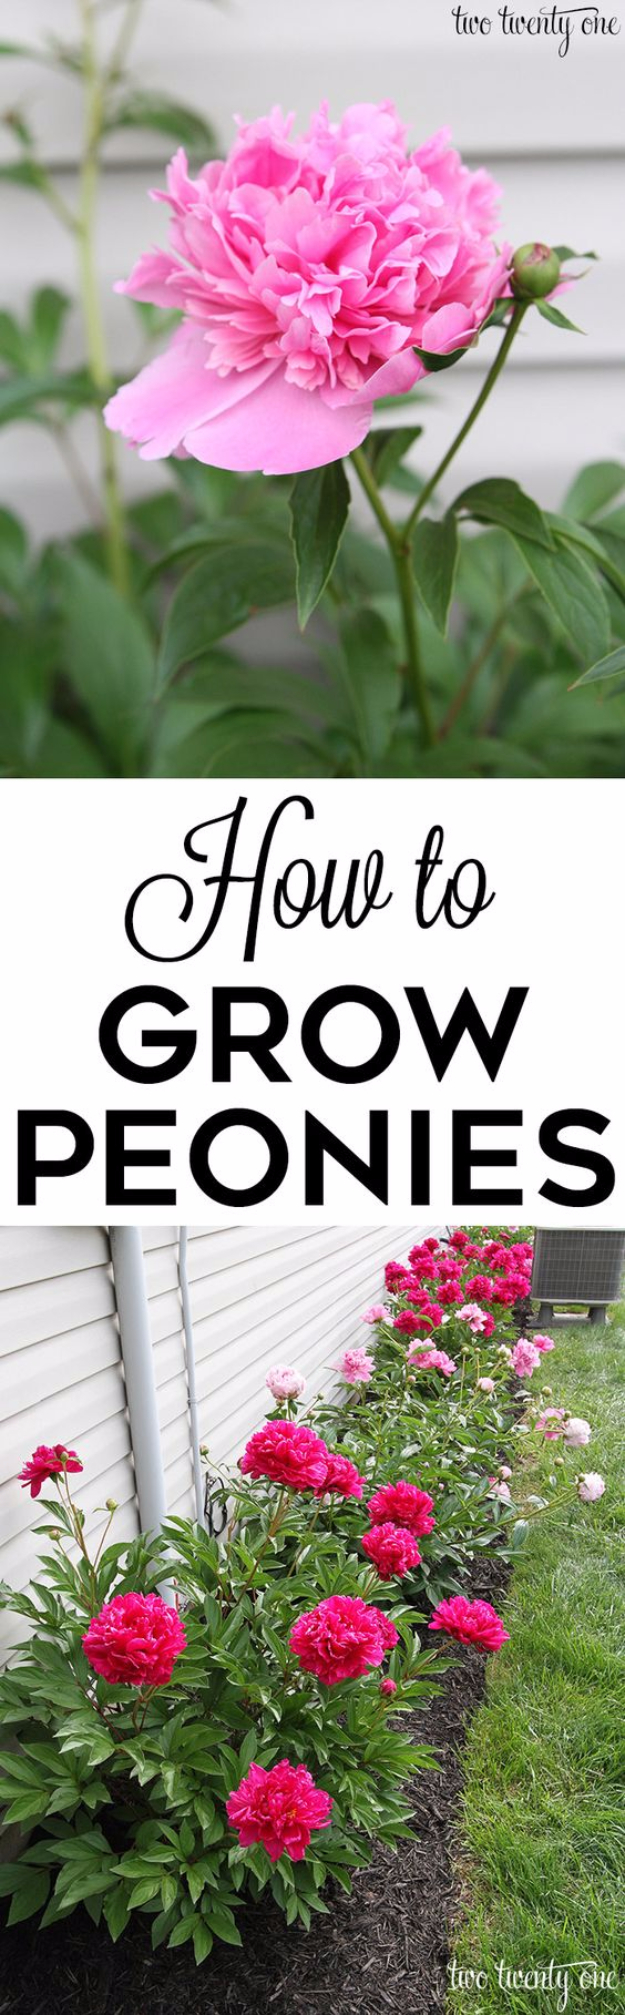 DIY Spring Gardening Projects - Growing Peonies For Spring - Cool and Easy Planting Tips for Spring Garden - Step by Step Tutorials for Growing Seeds, Plants, Vegetables and Flowers in You Yard - DIY Project Ideas for Women and Men - Creative and Quick Backyard Ideas For Summer http://diyjoy.com/diy-spring-gardening